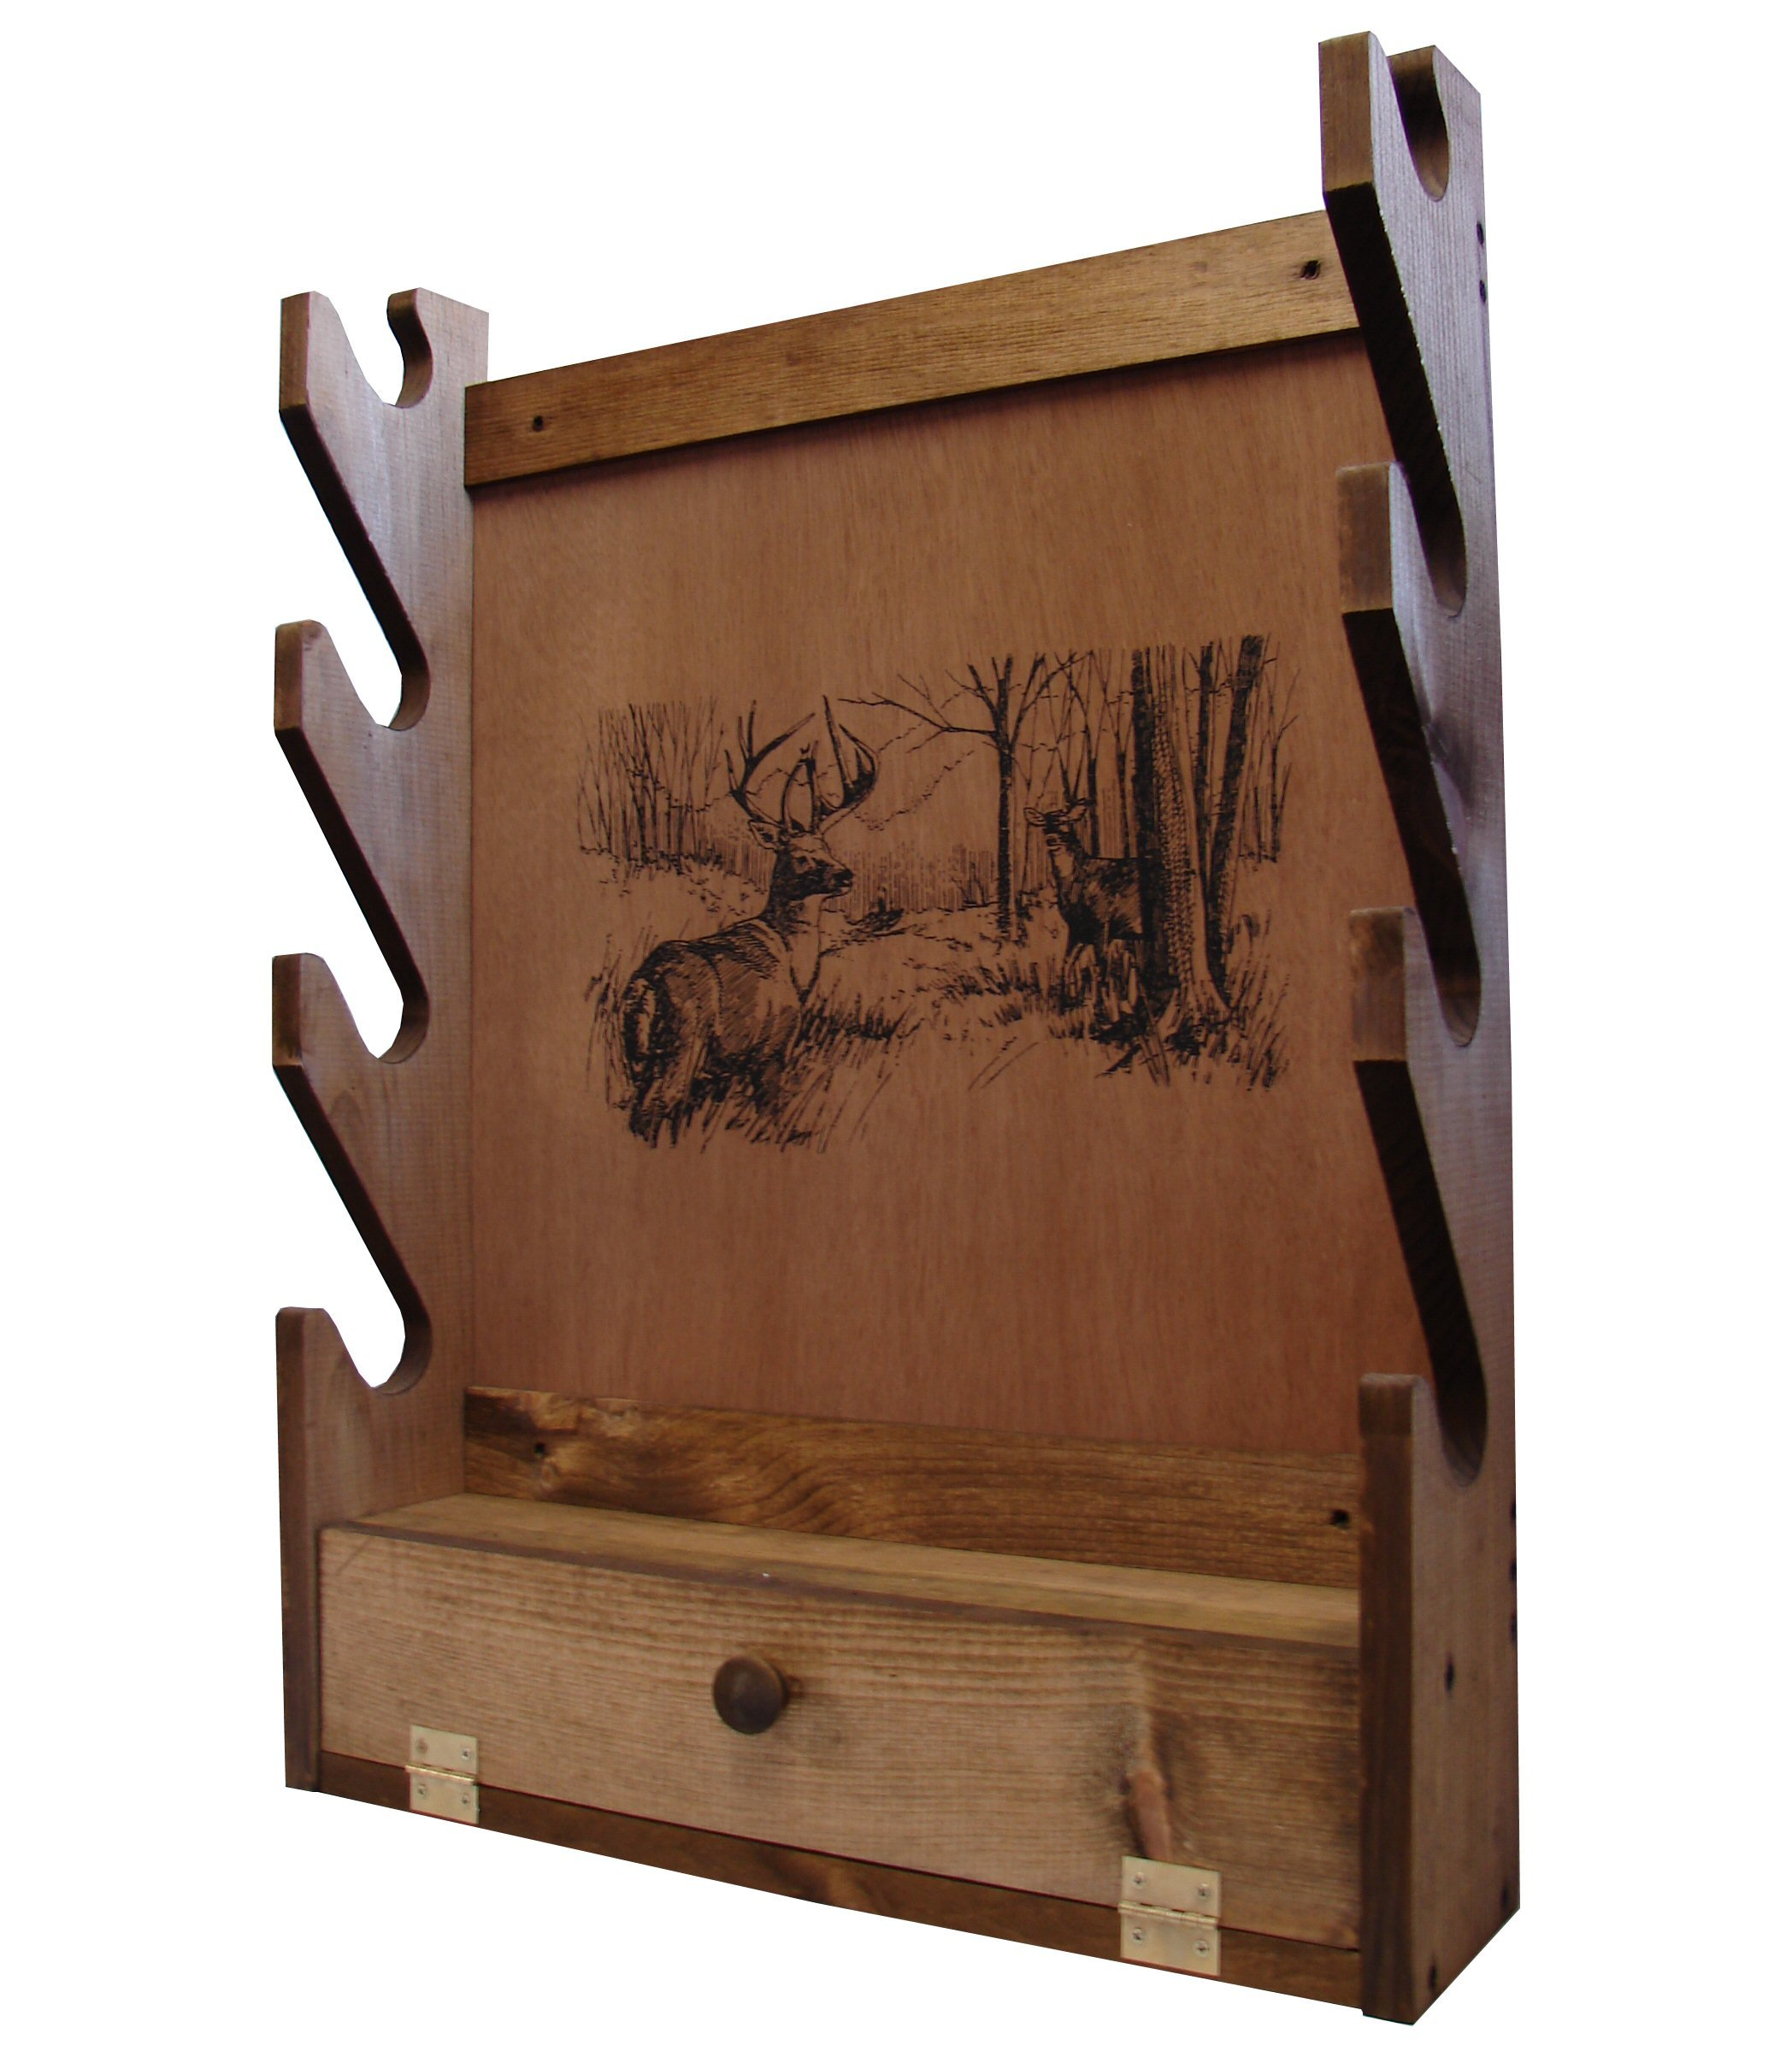 Evans Sports Gun Rack with Storage Compartment, Deer by Evans Sports